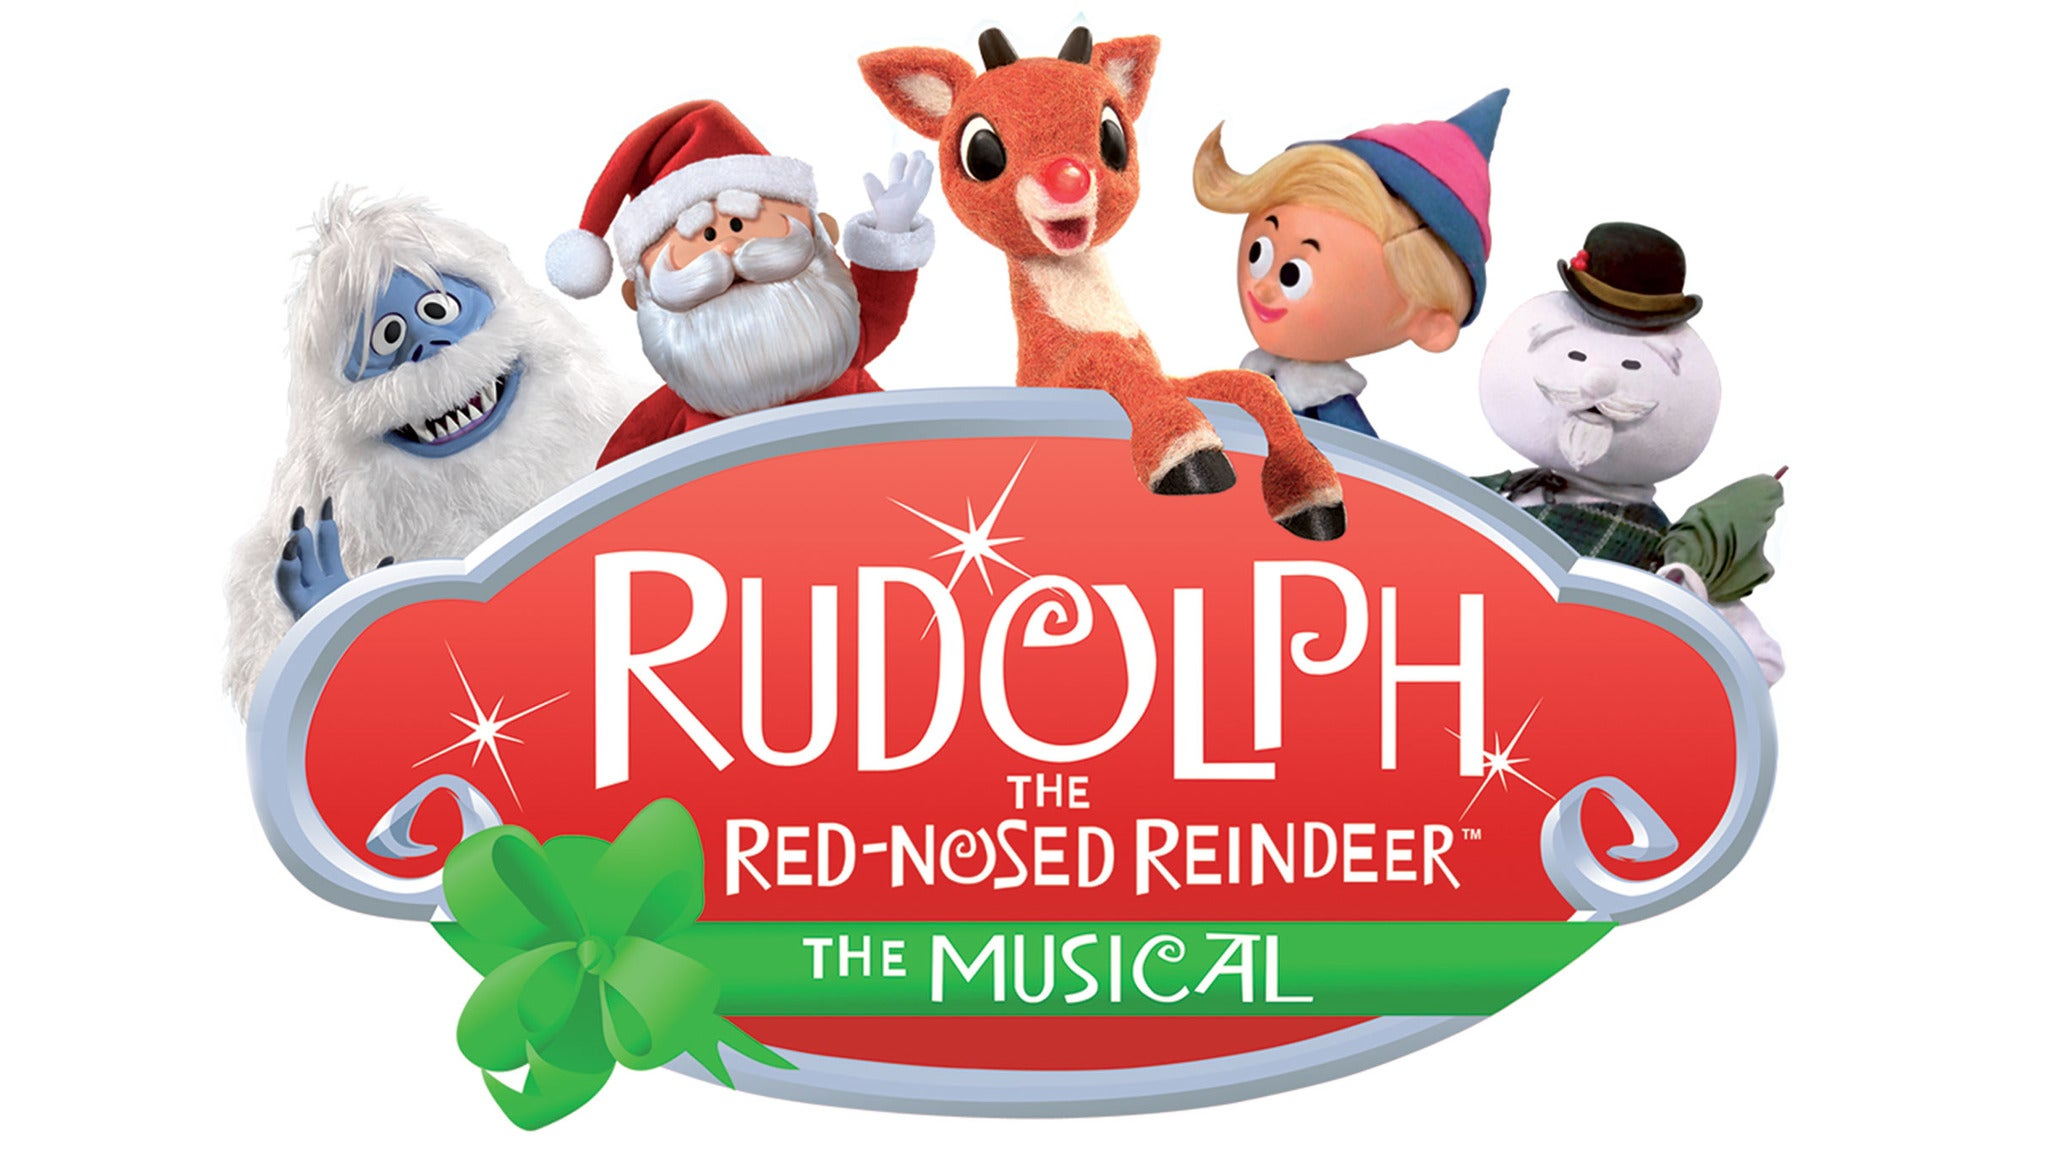 Theater League presents Rudolph The Red-Nosed Reindeer - Thousand Oaks, CA 91362